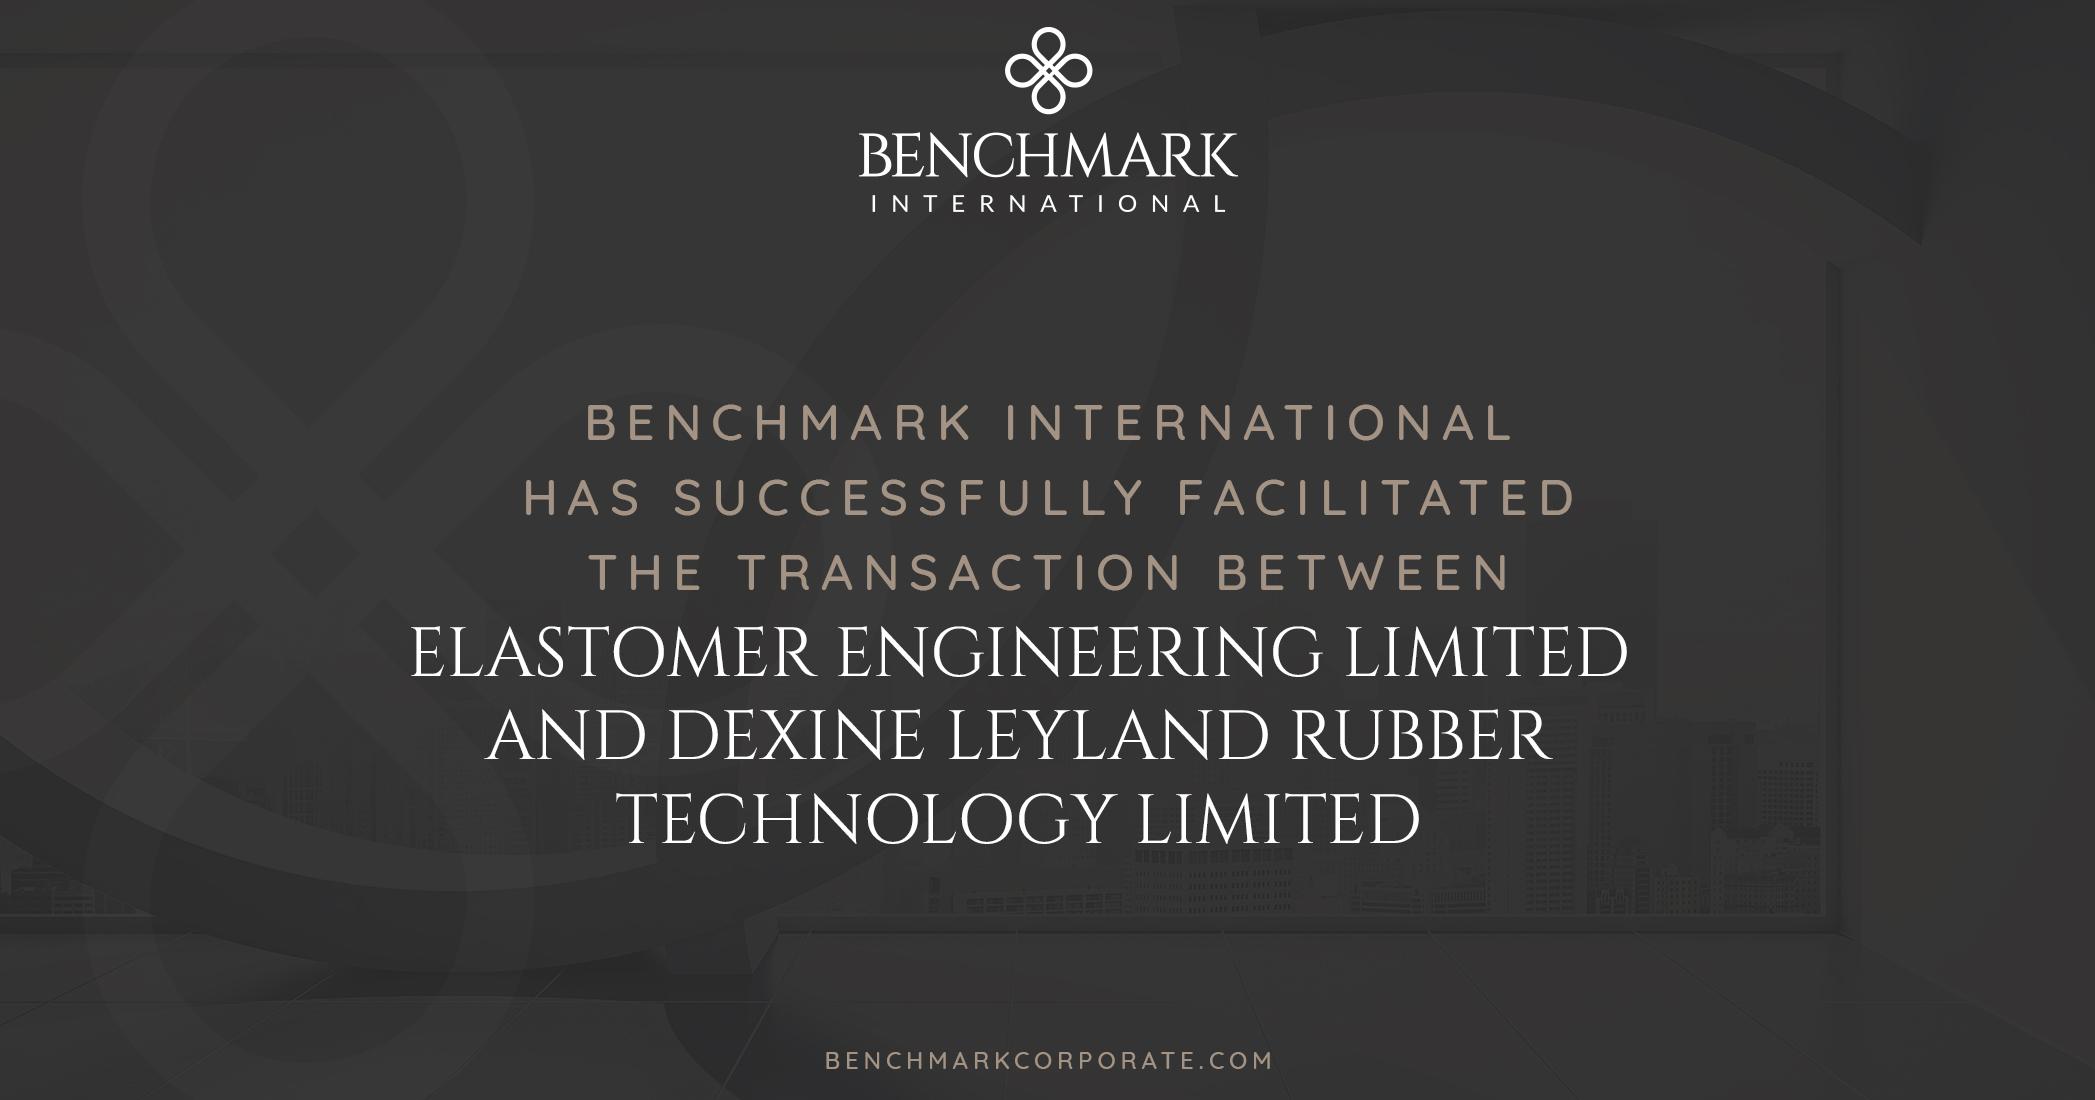 Benchmark International has Successfully Facilitated the Transaction Between Elastomer Engineering Limited and Dexine Leyland Rubber Technology Limited